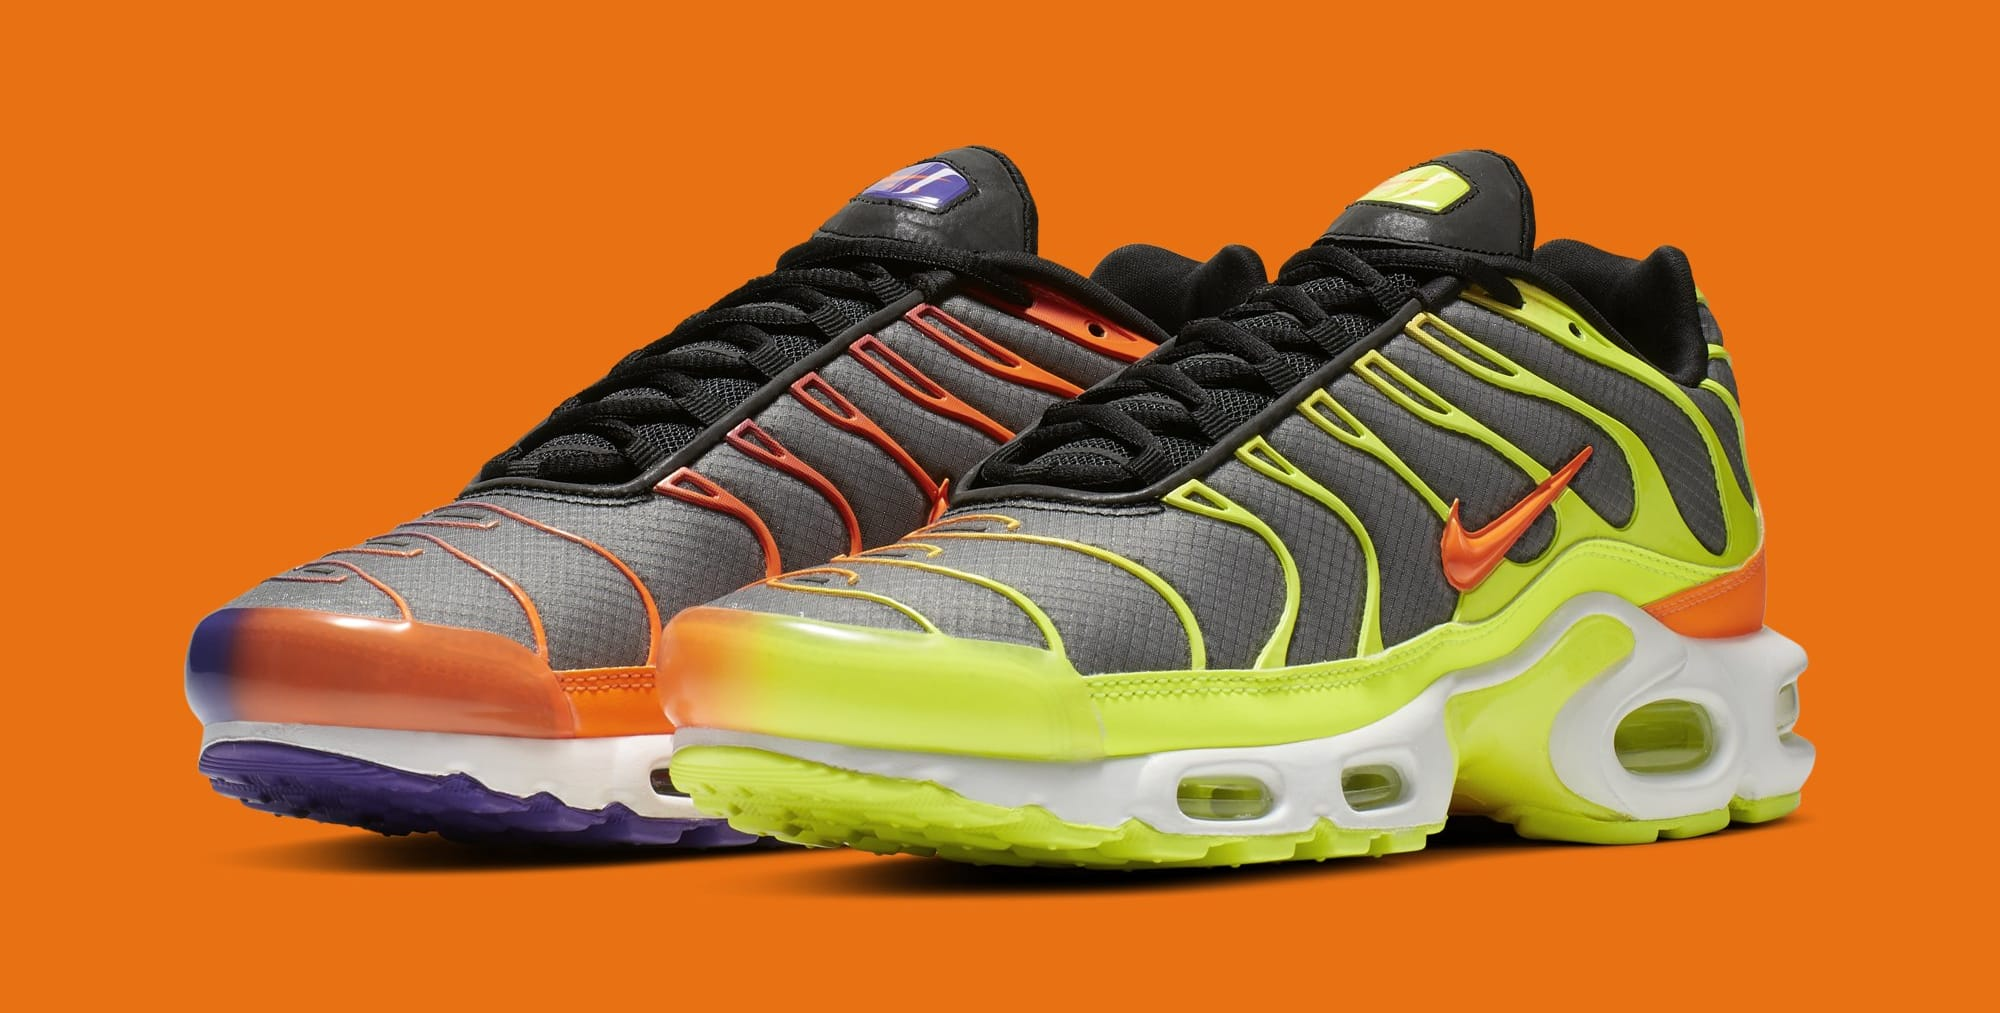 Nike Air Max Plus 'Color Flip/Black' CI5924-061 (Pair)